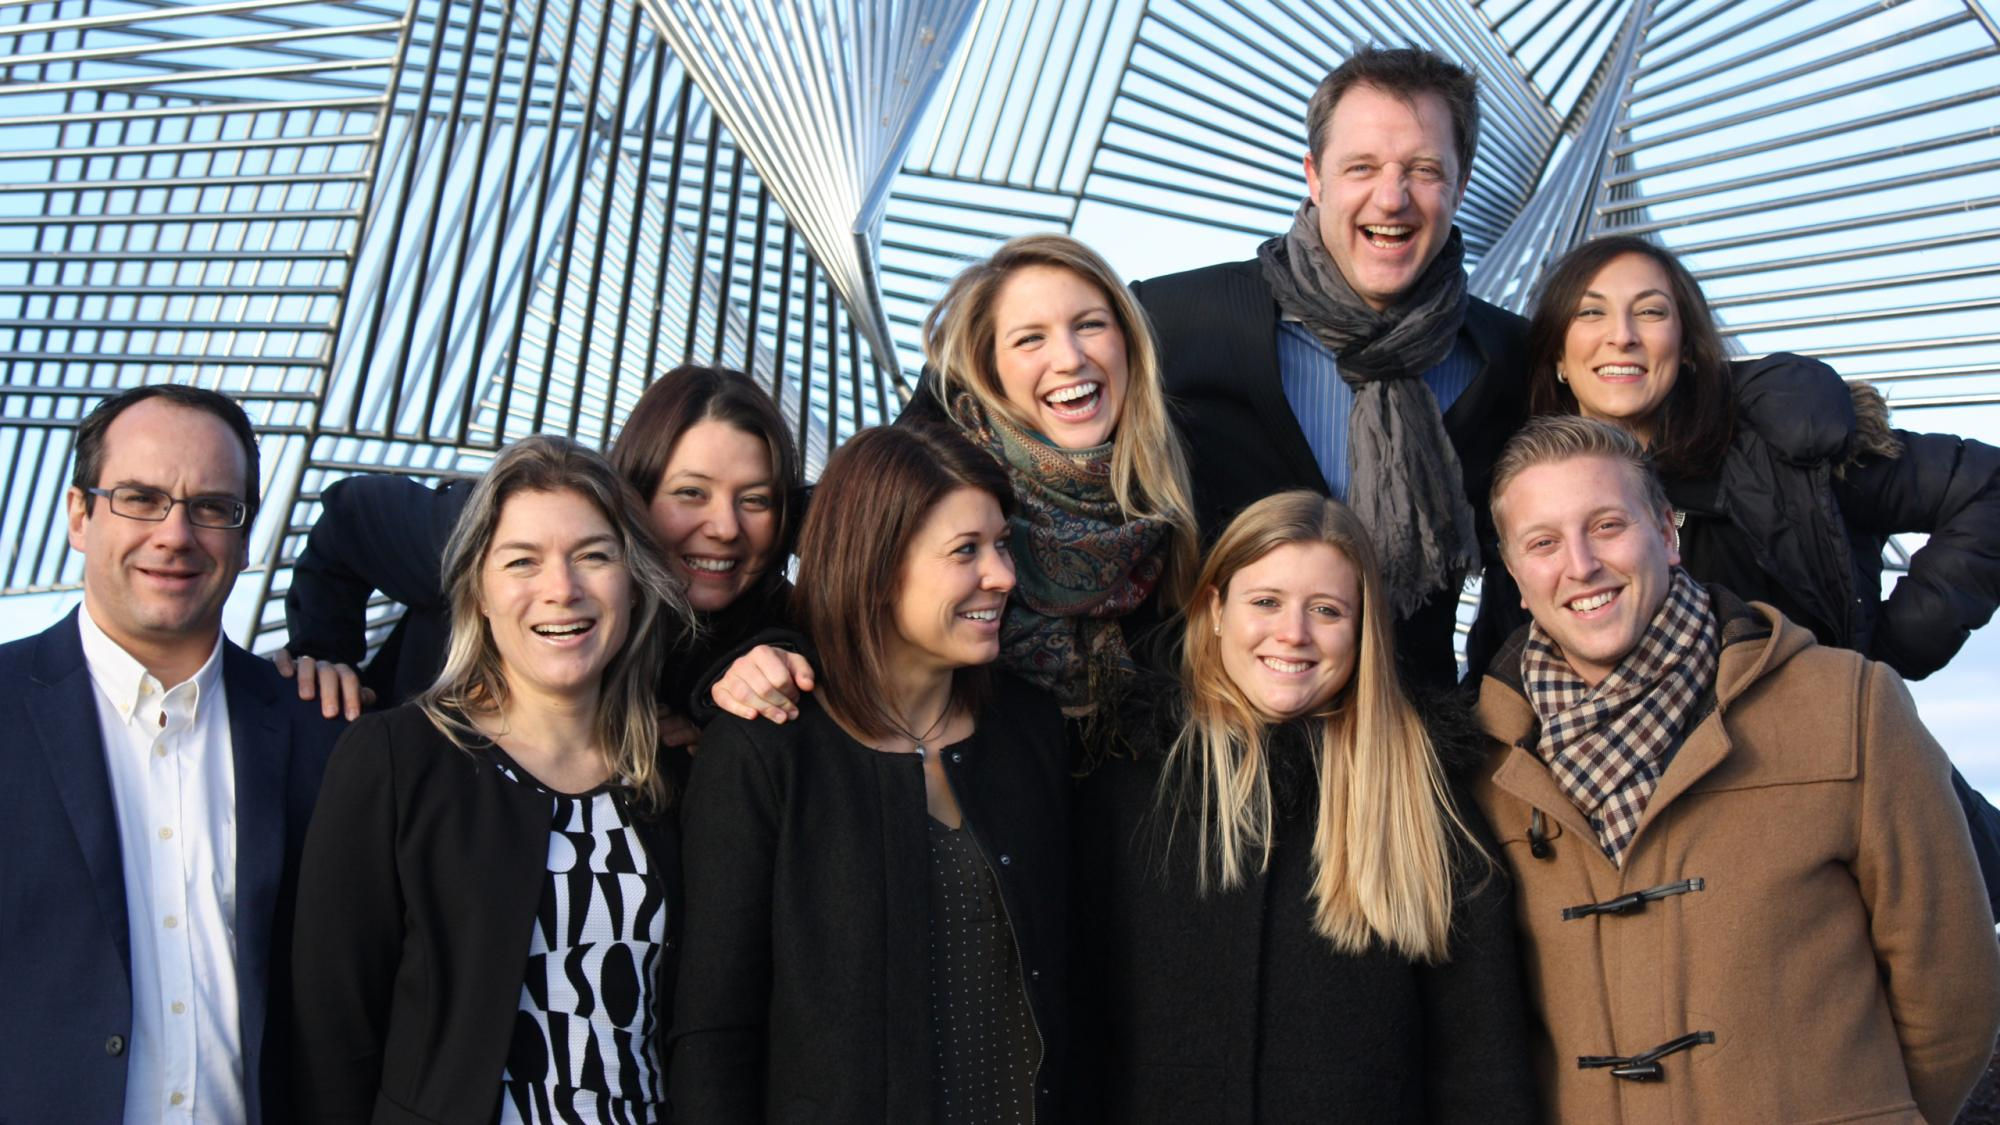 The marketing Team from Lausanne Tourisme - © Lausanne Tourisme